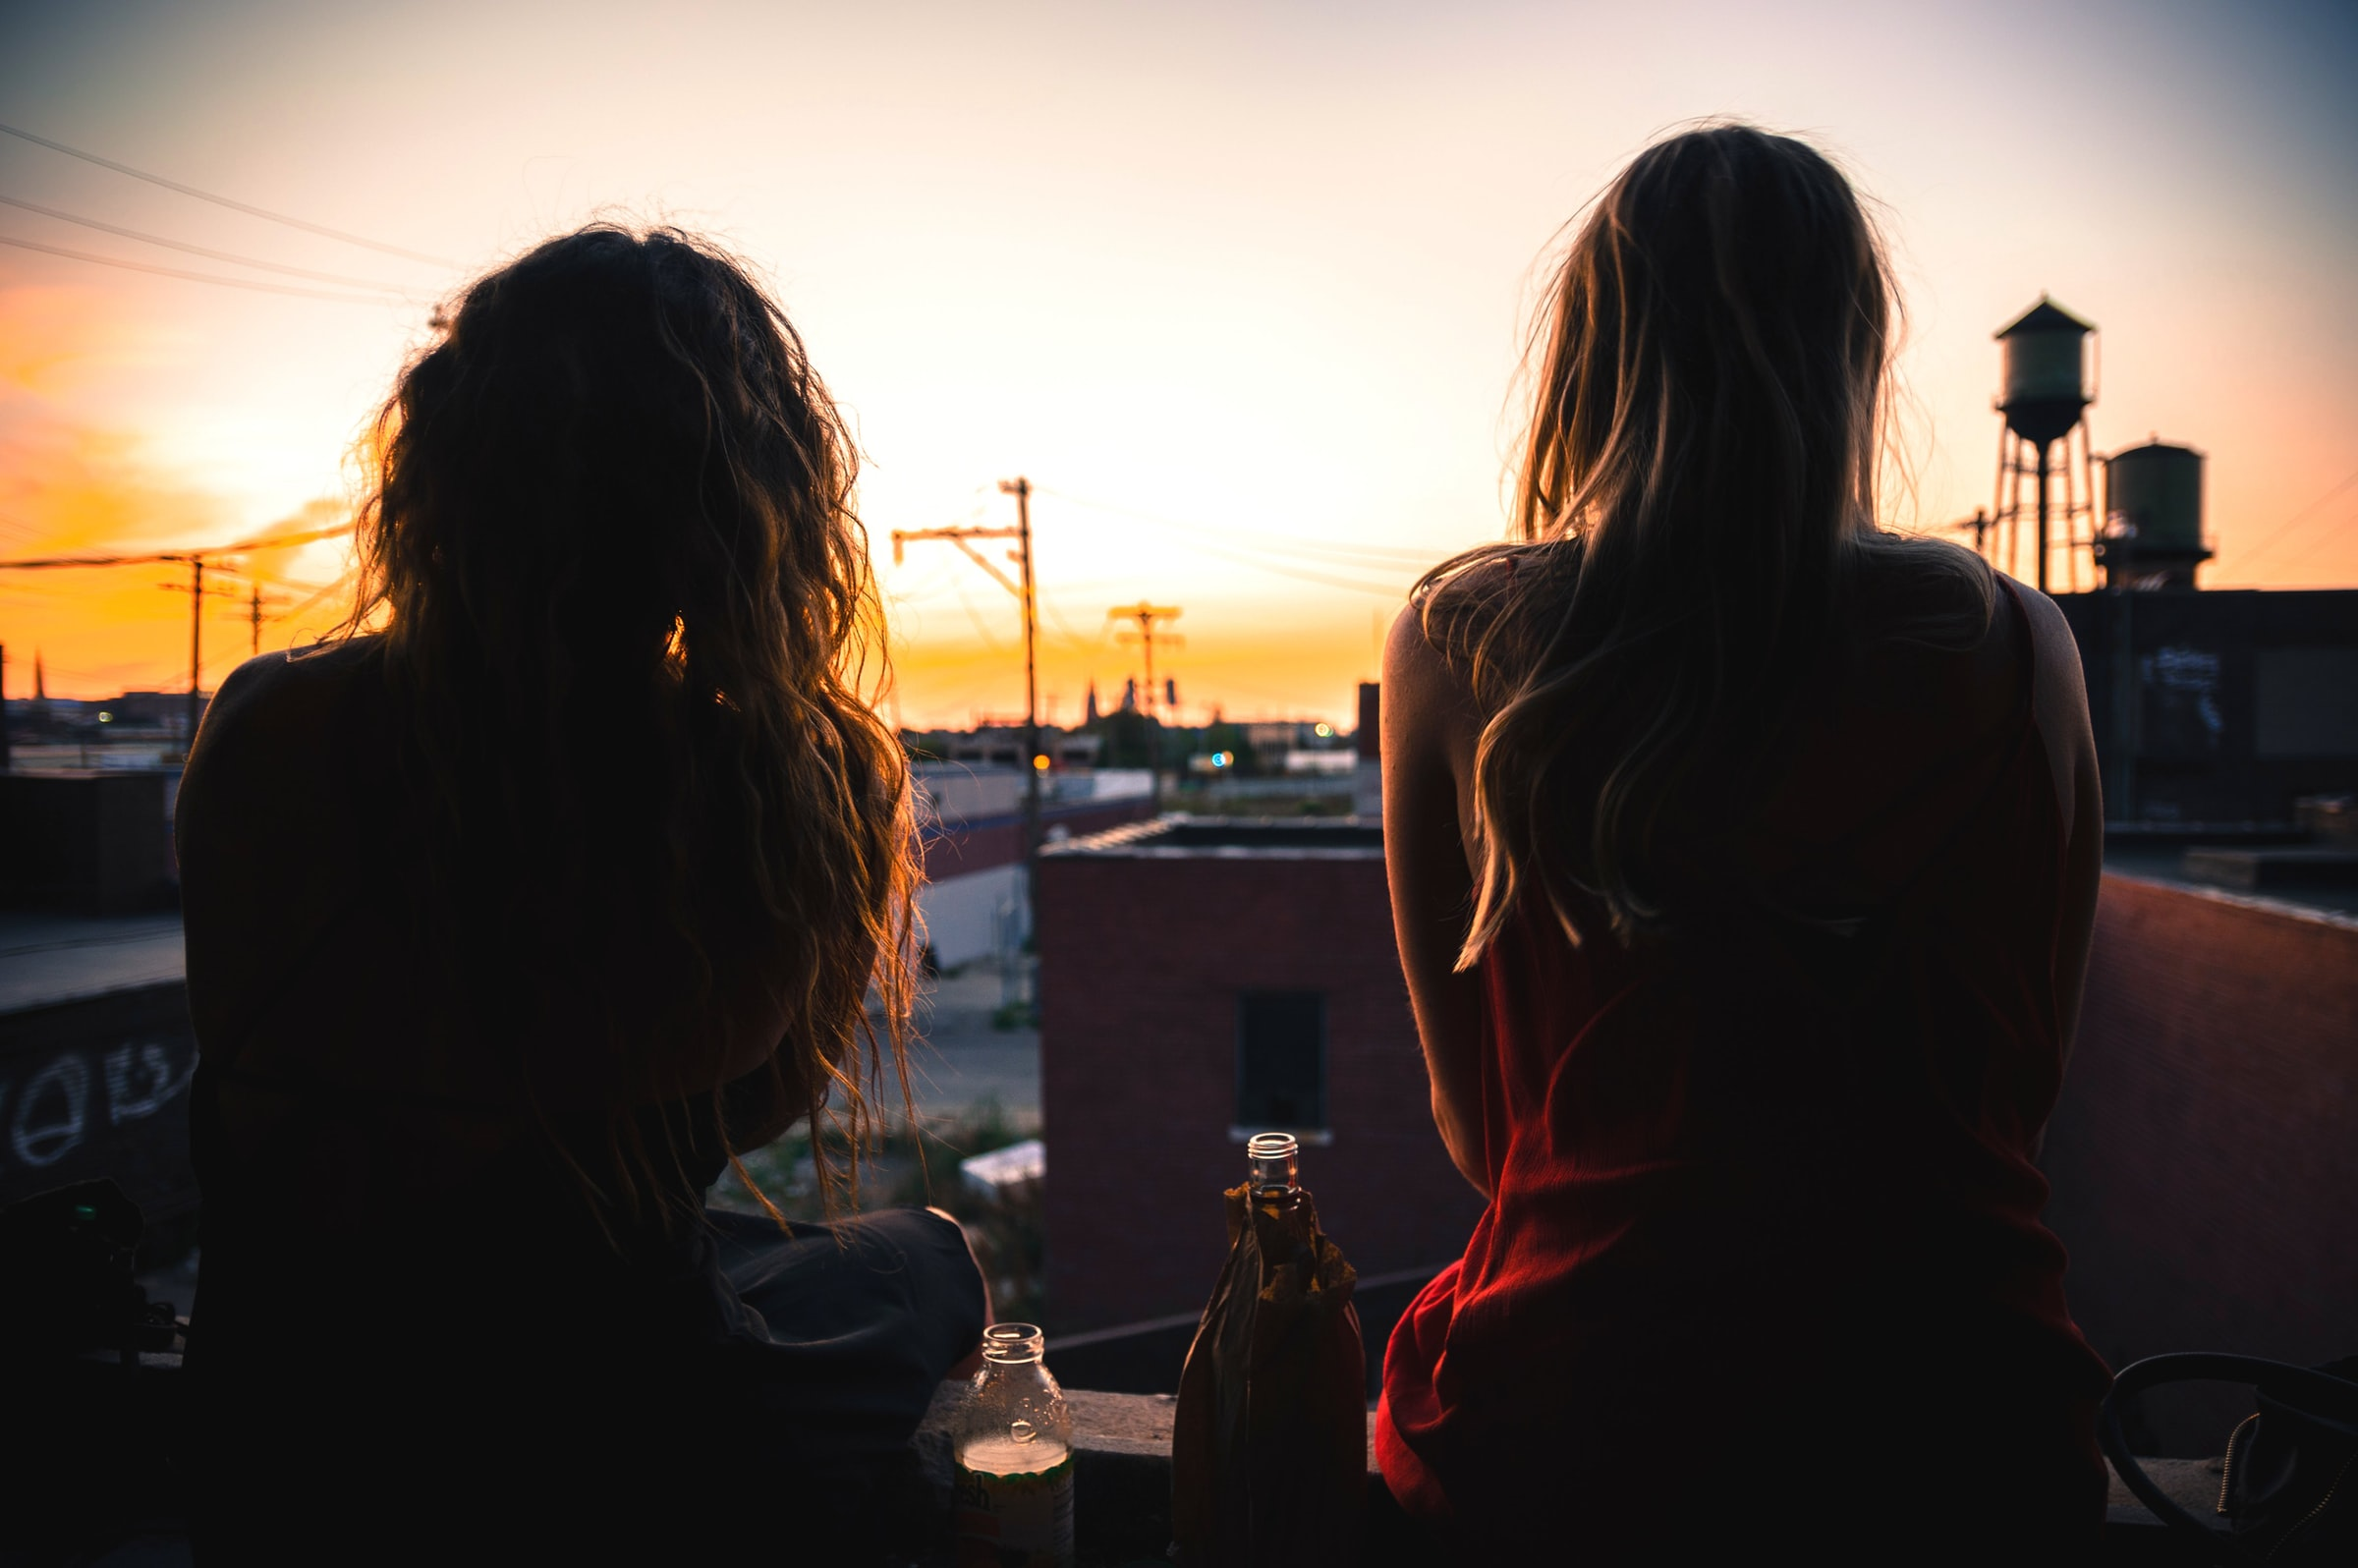 a friend is someone who understands your past, believes in your future and accepts the way that you are today